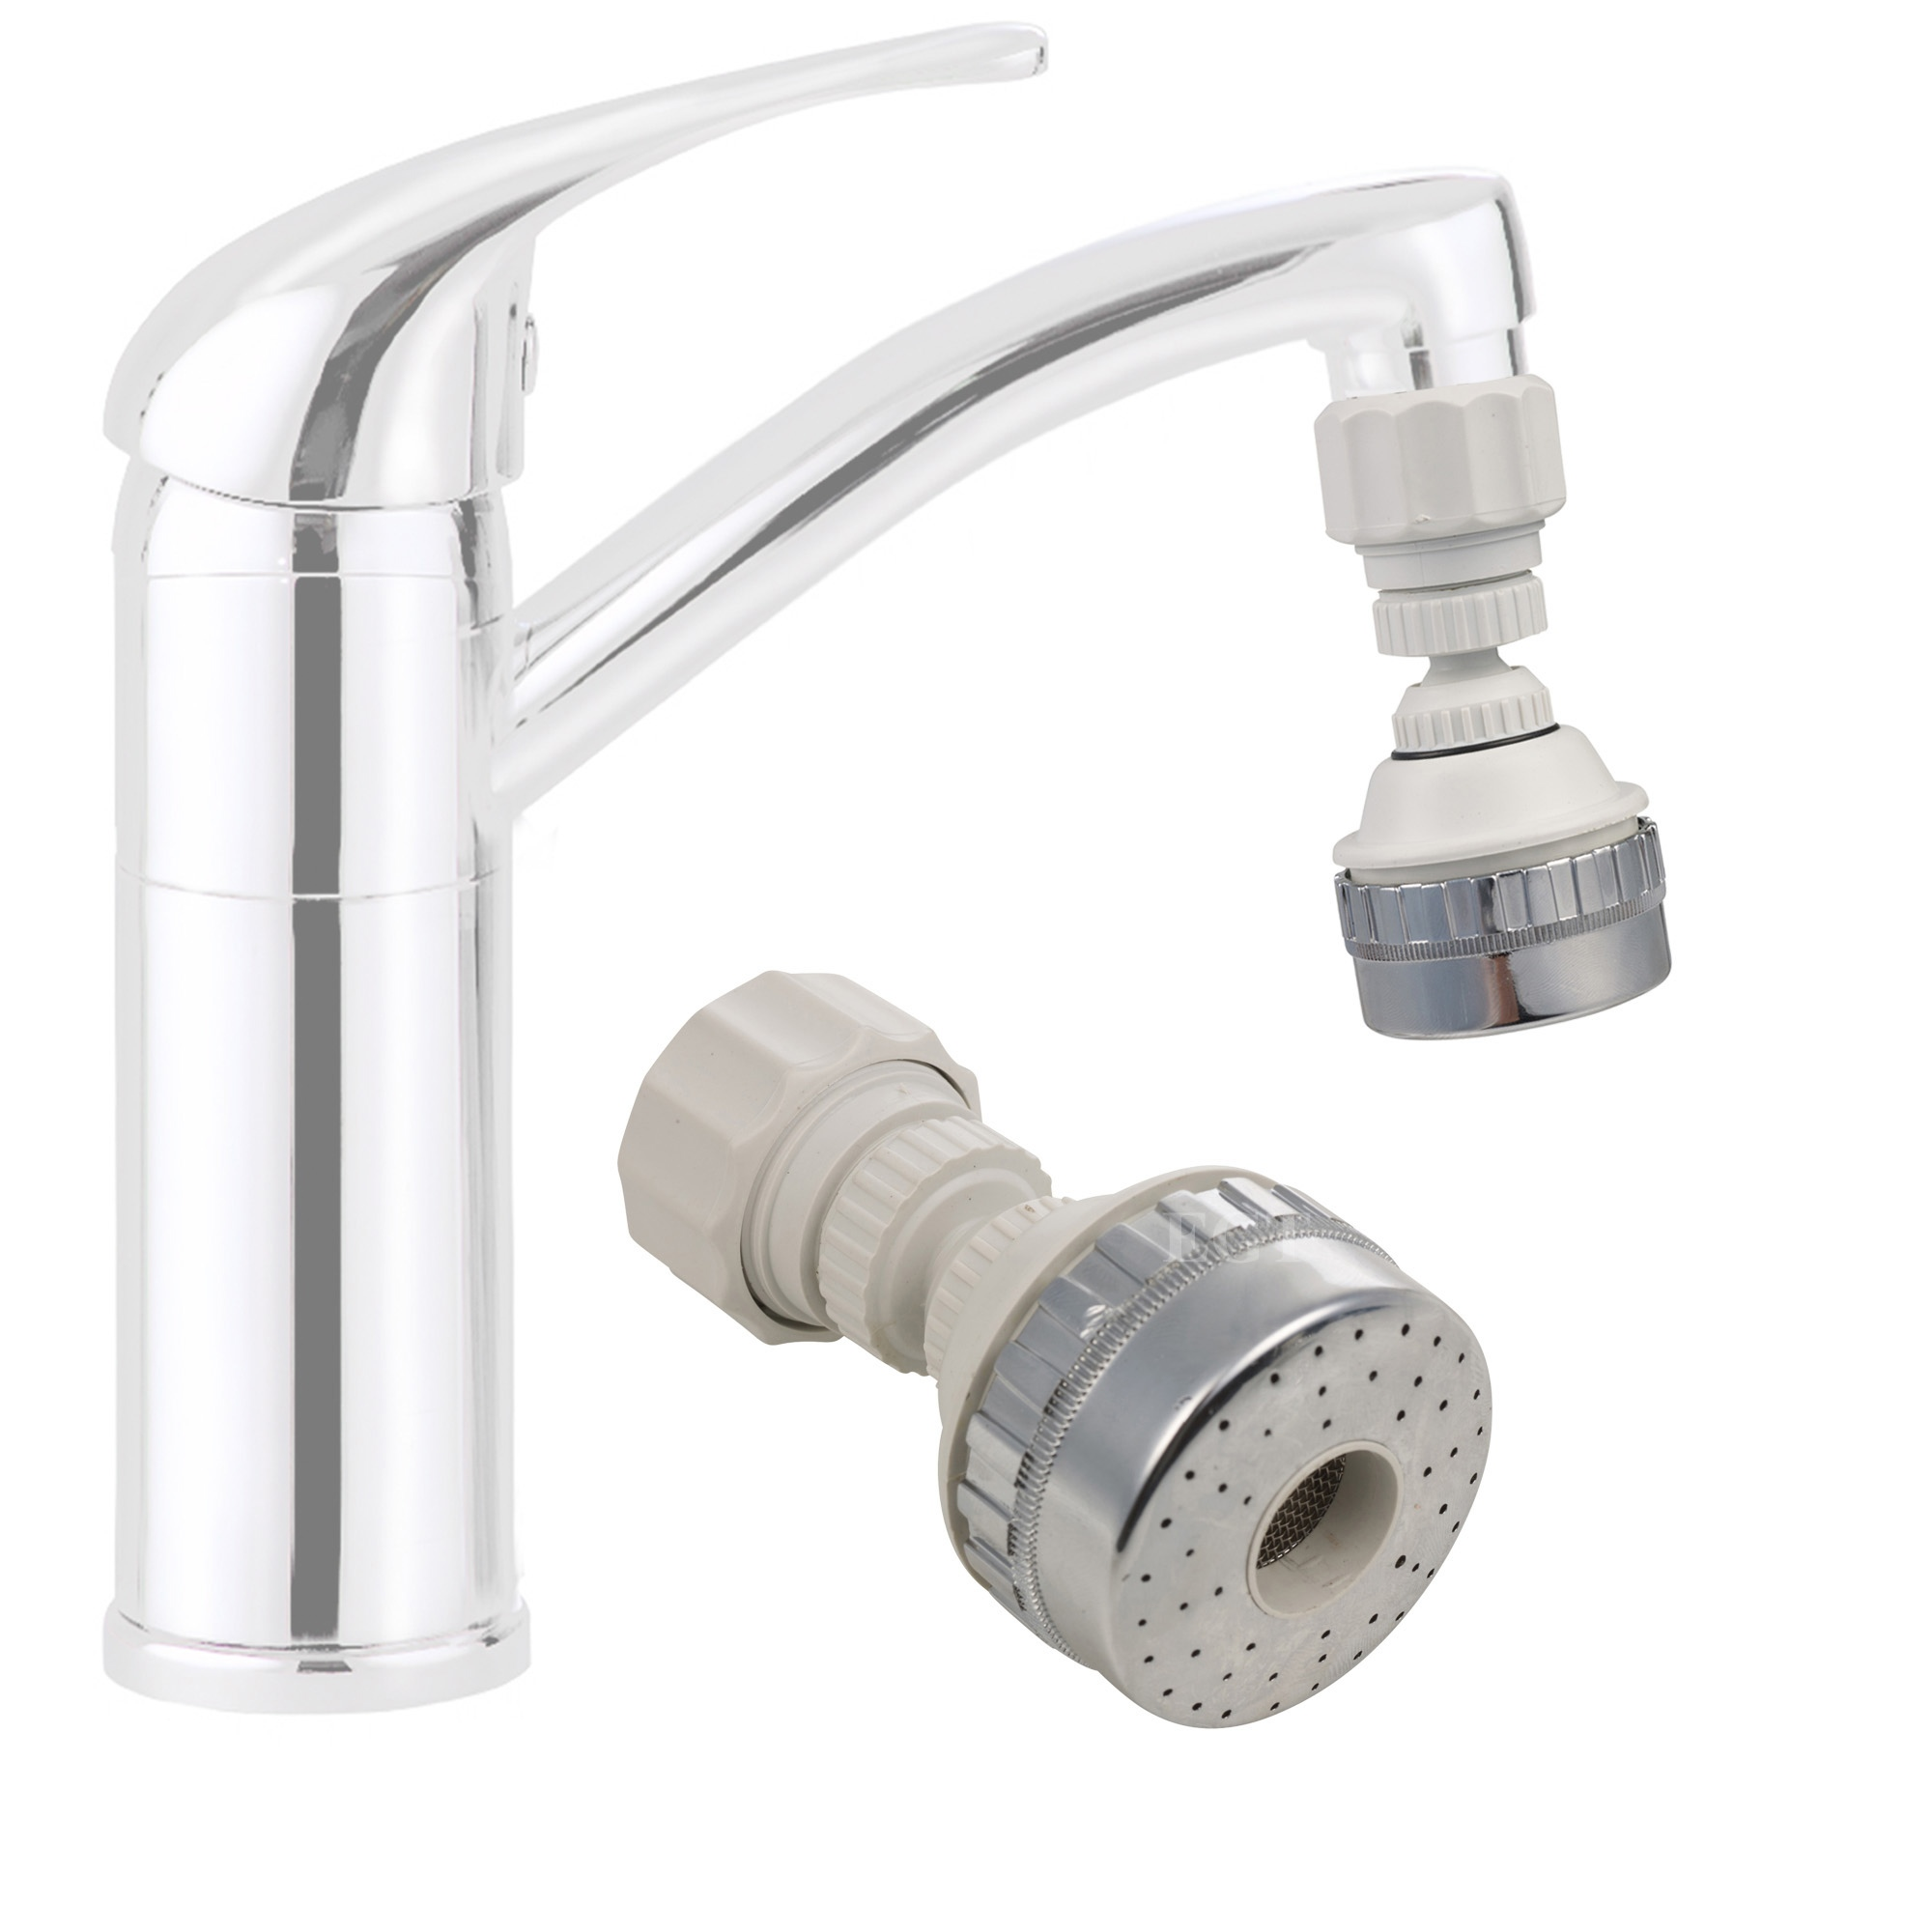 Kitchen Faucet Nozzle: Large Eco Water Saving Kitchen Tap Faucet Aerator 360